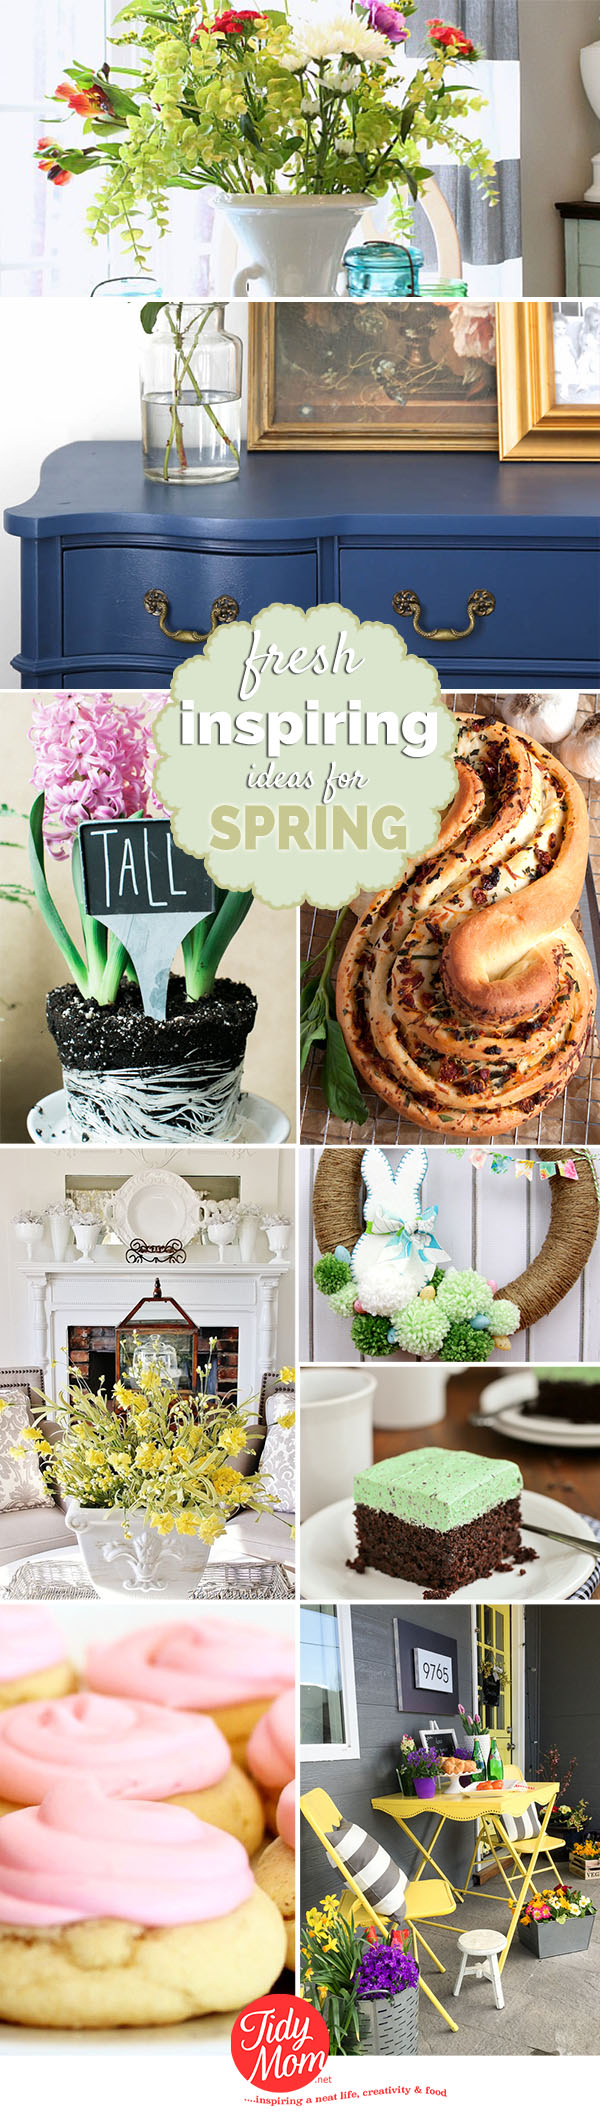 Fresh Inspiring Spring Ideas for projects, recipes and decor at TidyMom.net